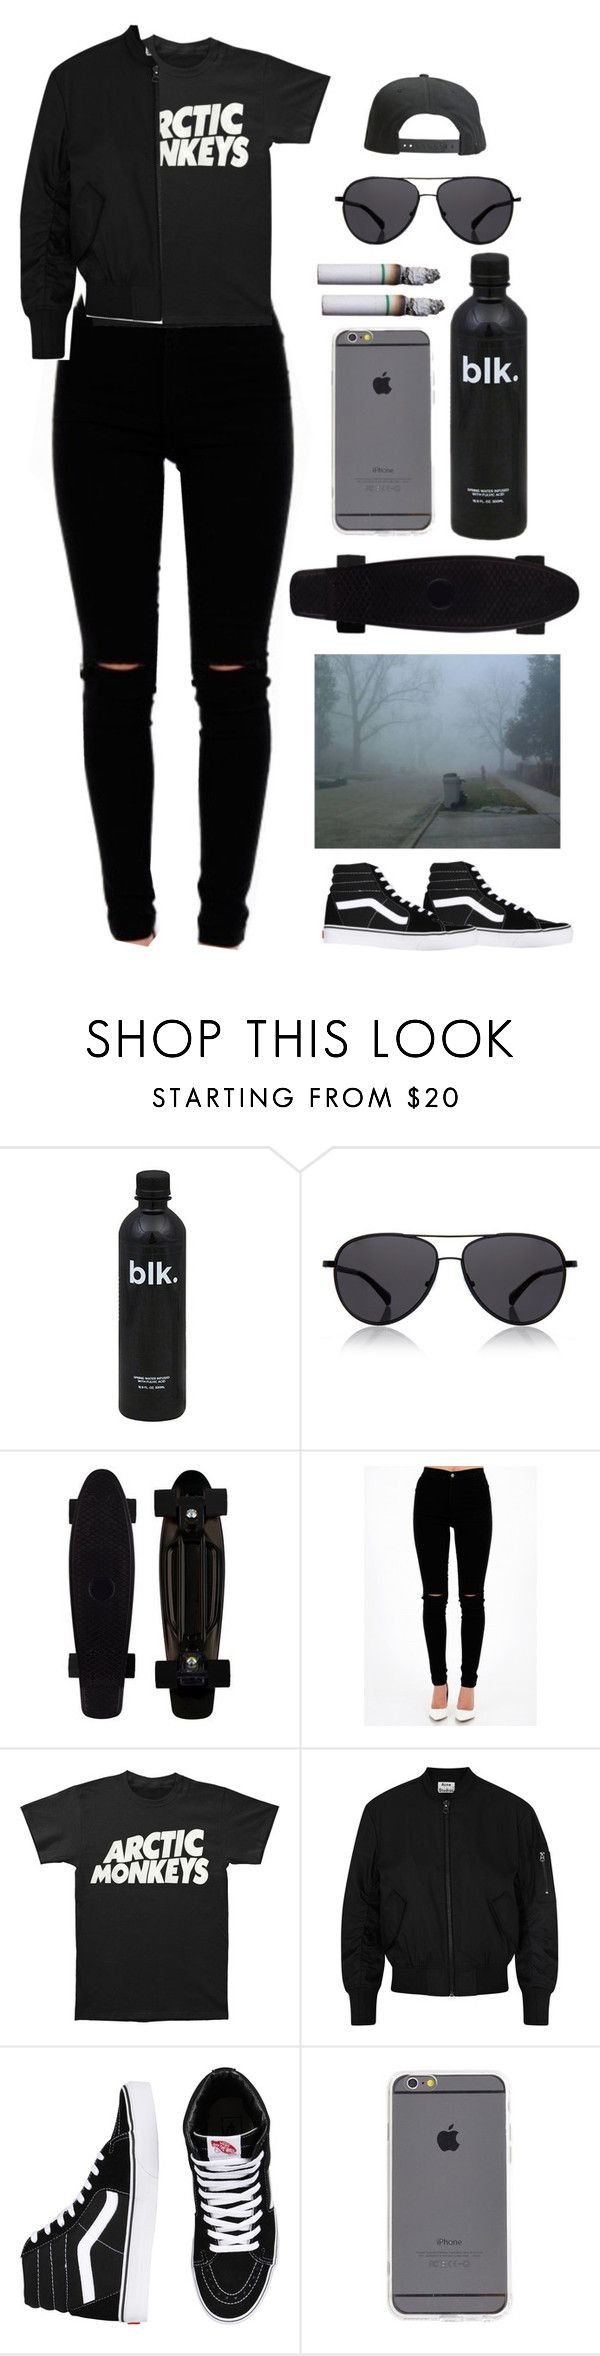 """""""Untitled #325"""" by blacksoul10 ❤ liked on Polyvore featuring The Row, Acne Studios, Vans and Tavik Swimwear"""